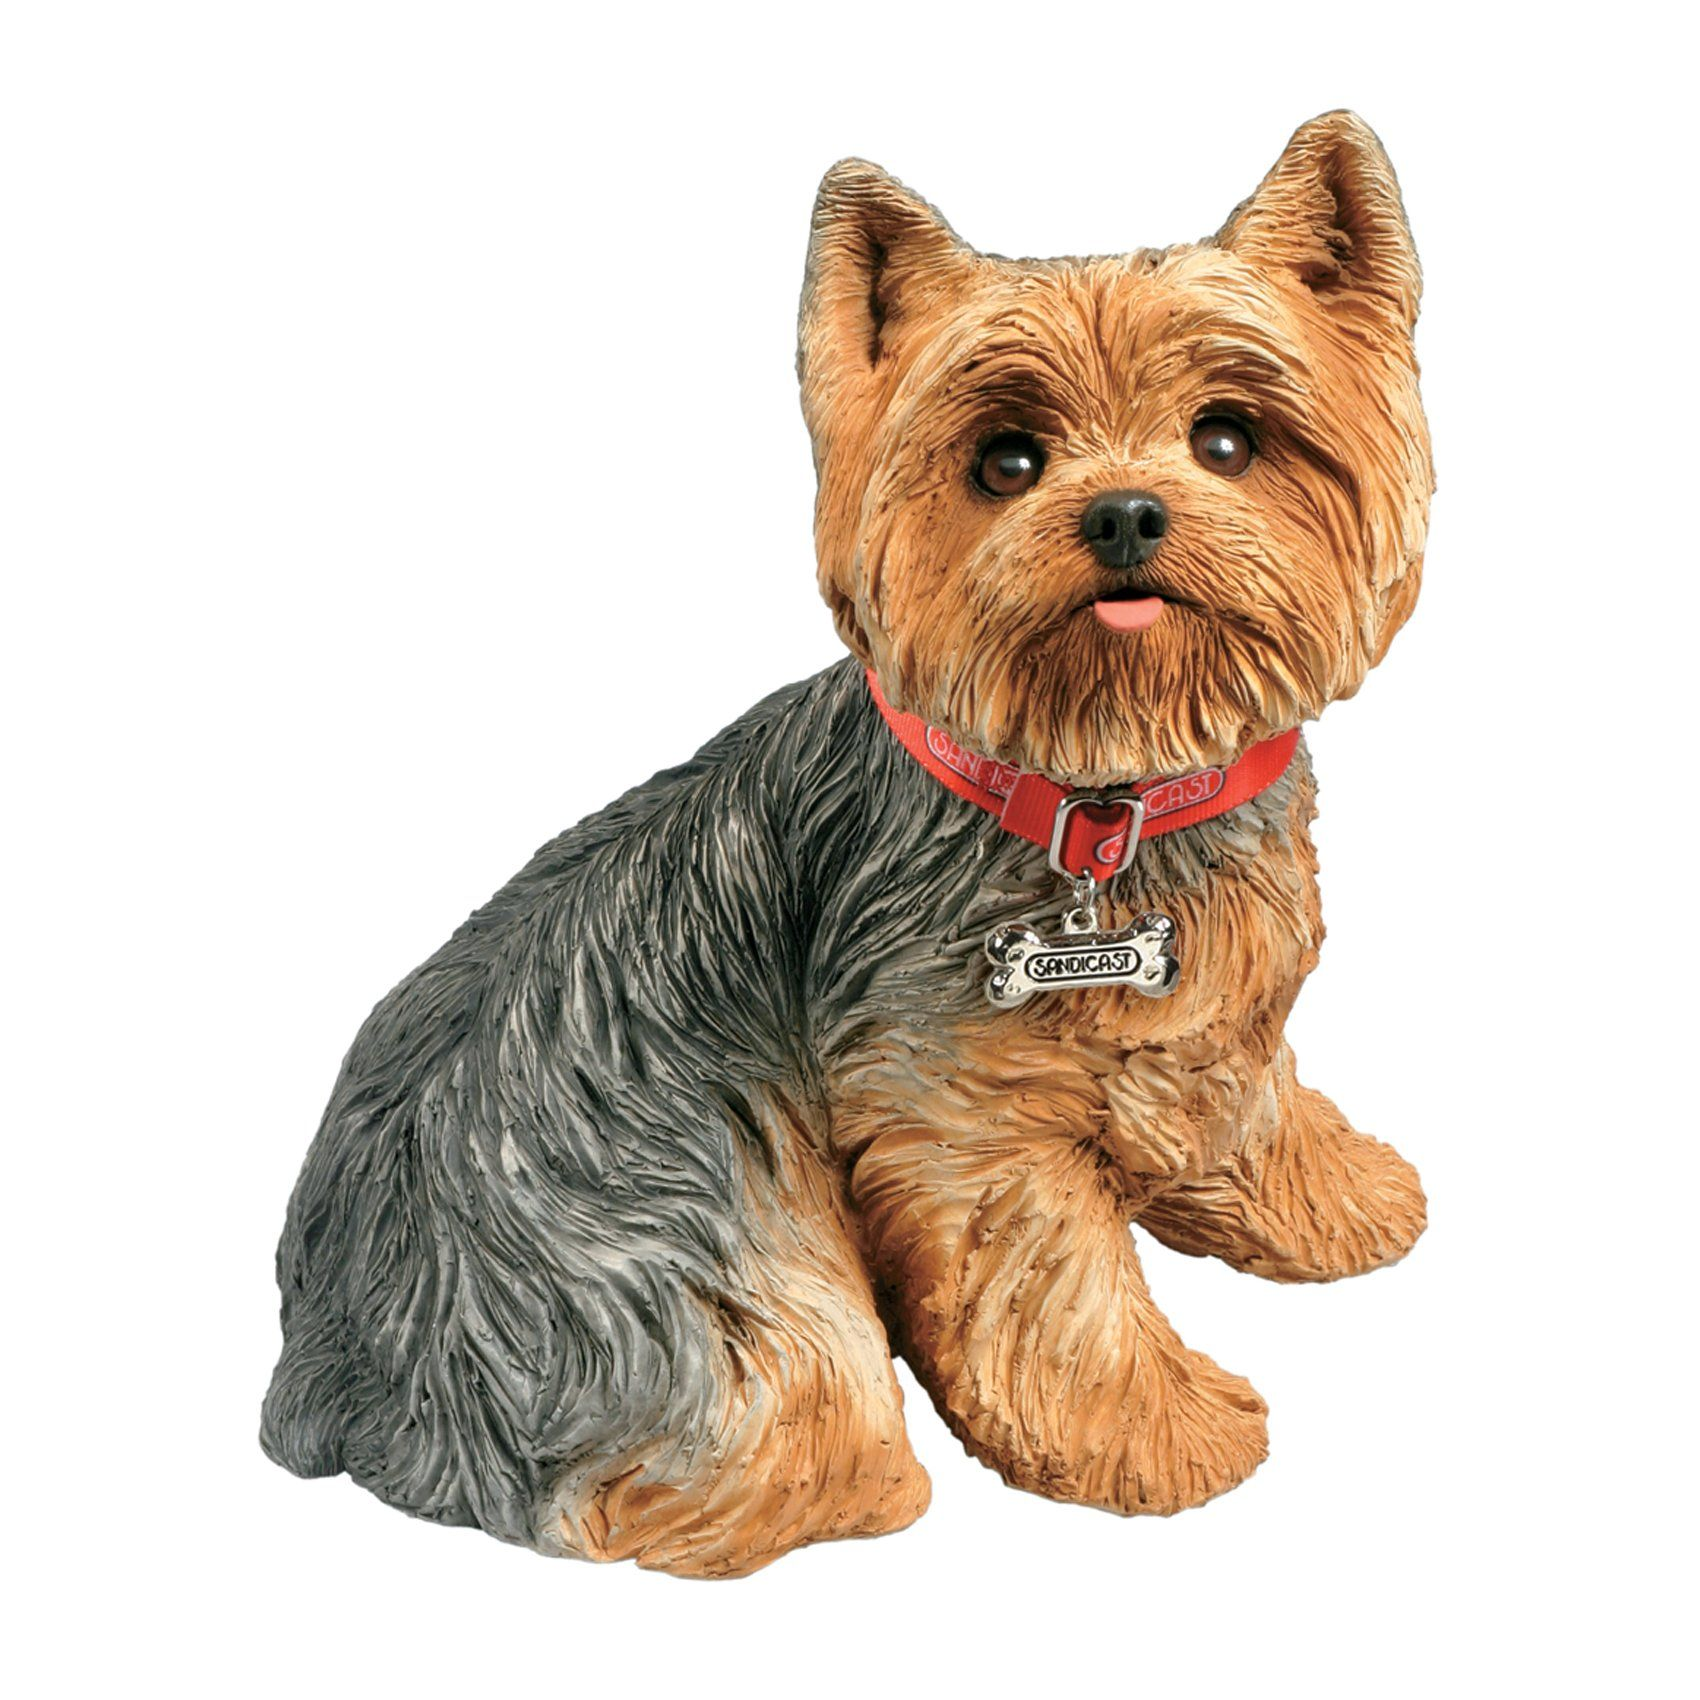 New Free Shipping Sandicast Yorkshire Terrier Sculpture Sitting Small Size